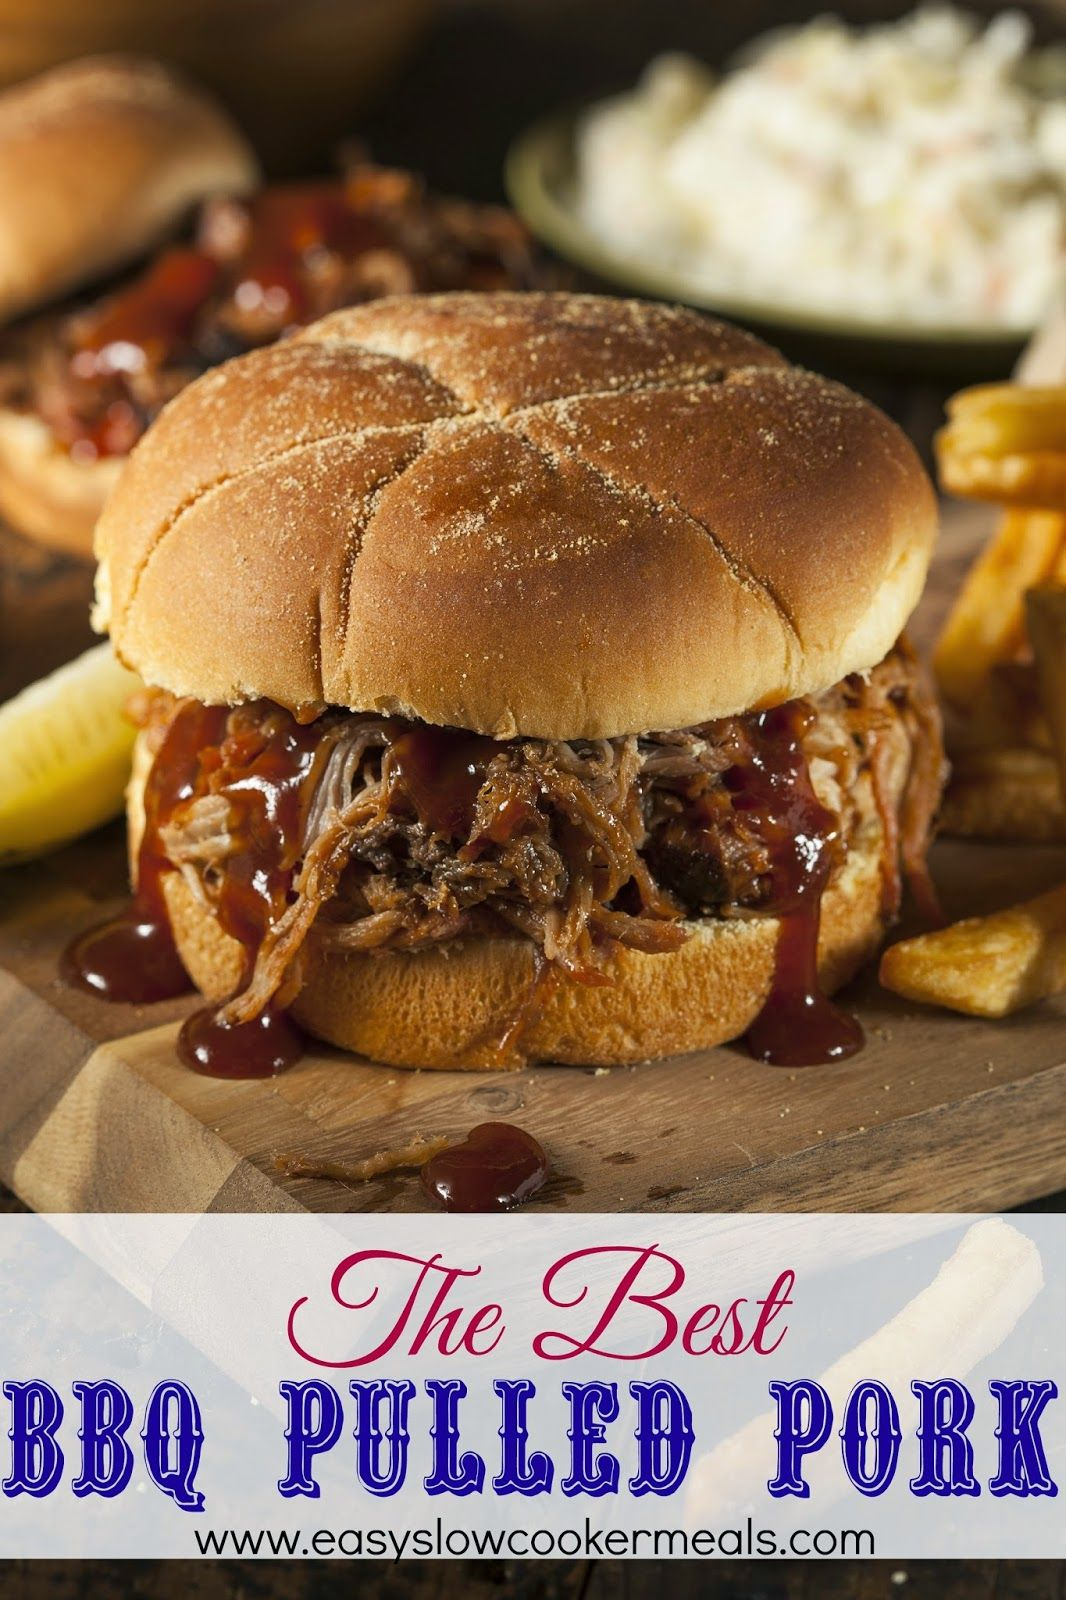 The Best BBQ Pulled Pork Sandwich --- My family ♥'s this #slowcooker recipe!  #food